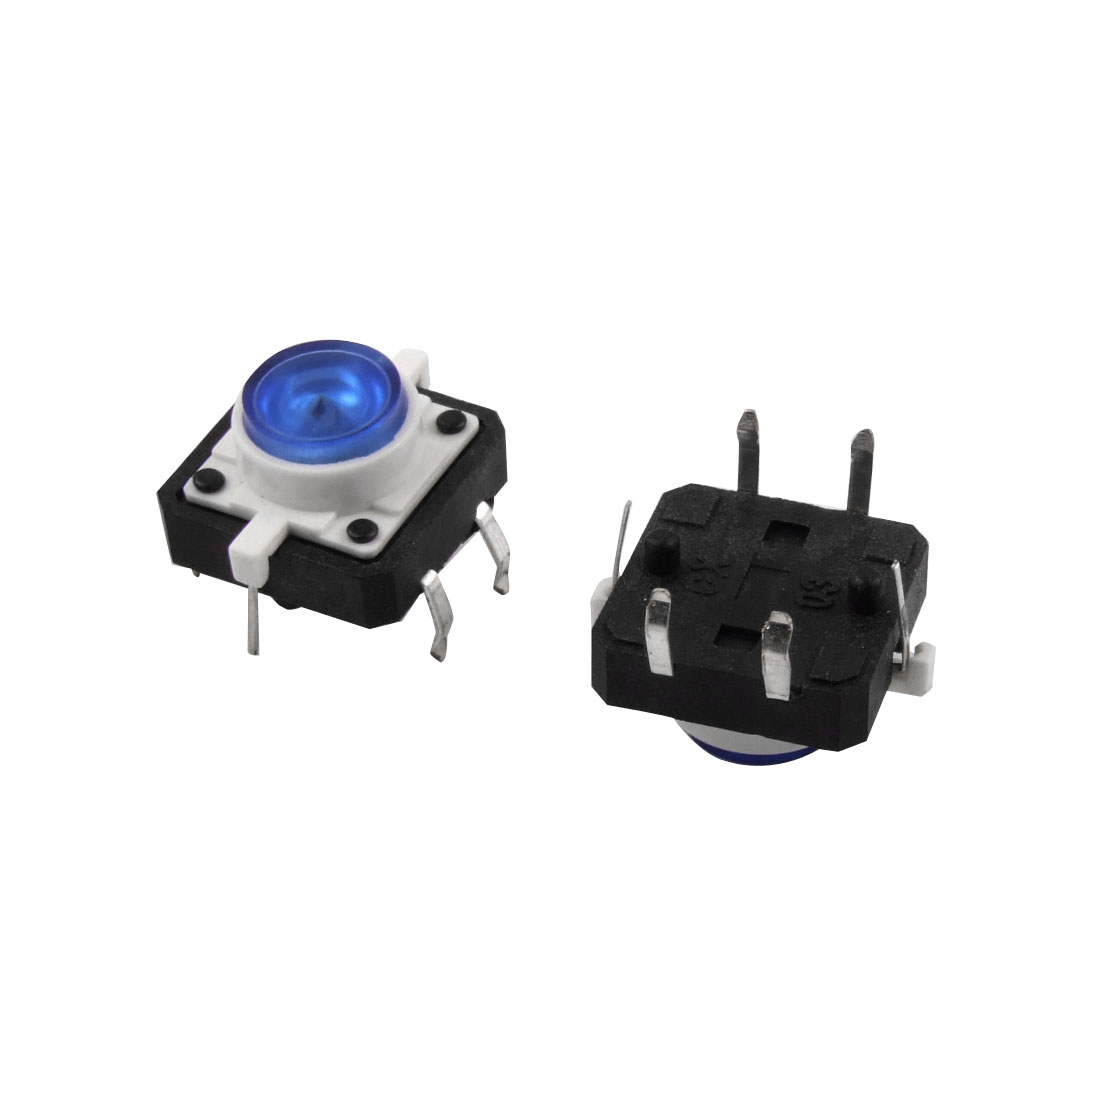 2 Pcs 12mm x 12mm Blue LED Push Button Momentary Tact Tactile Switch